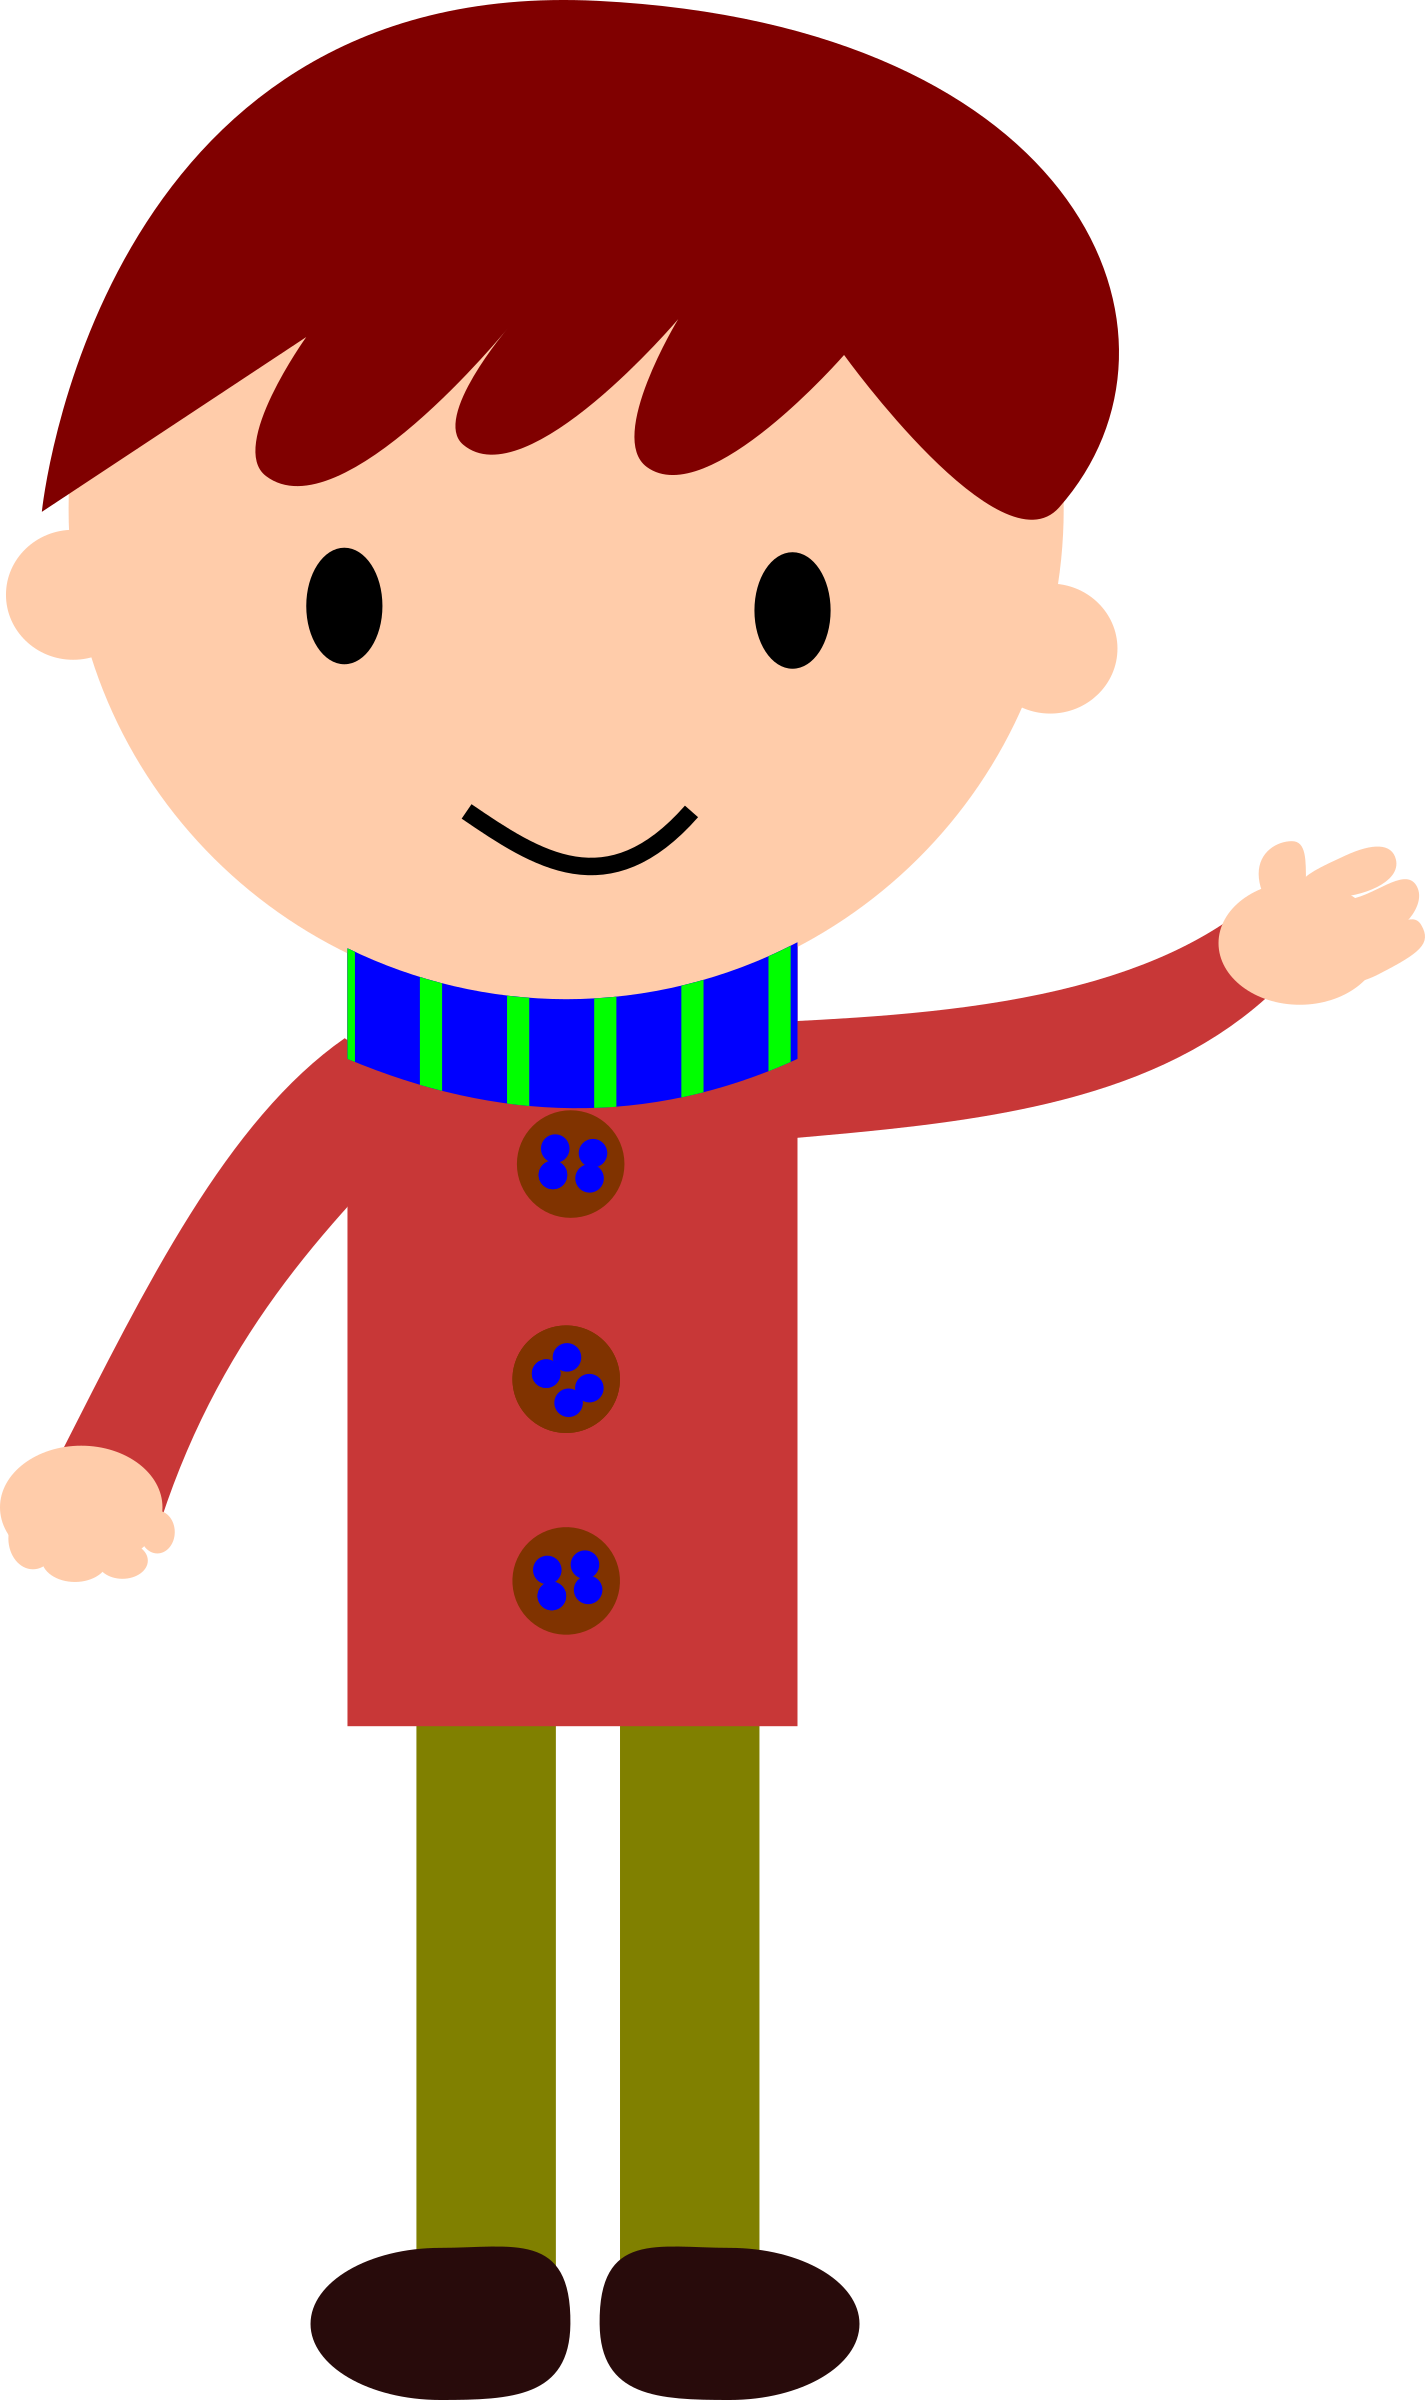 clip art transparent stock Carolers clipart spirit. Pin by dhiraj on